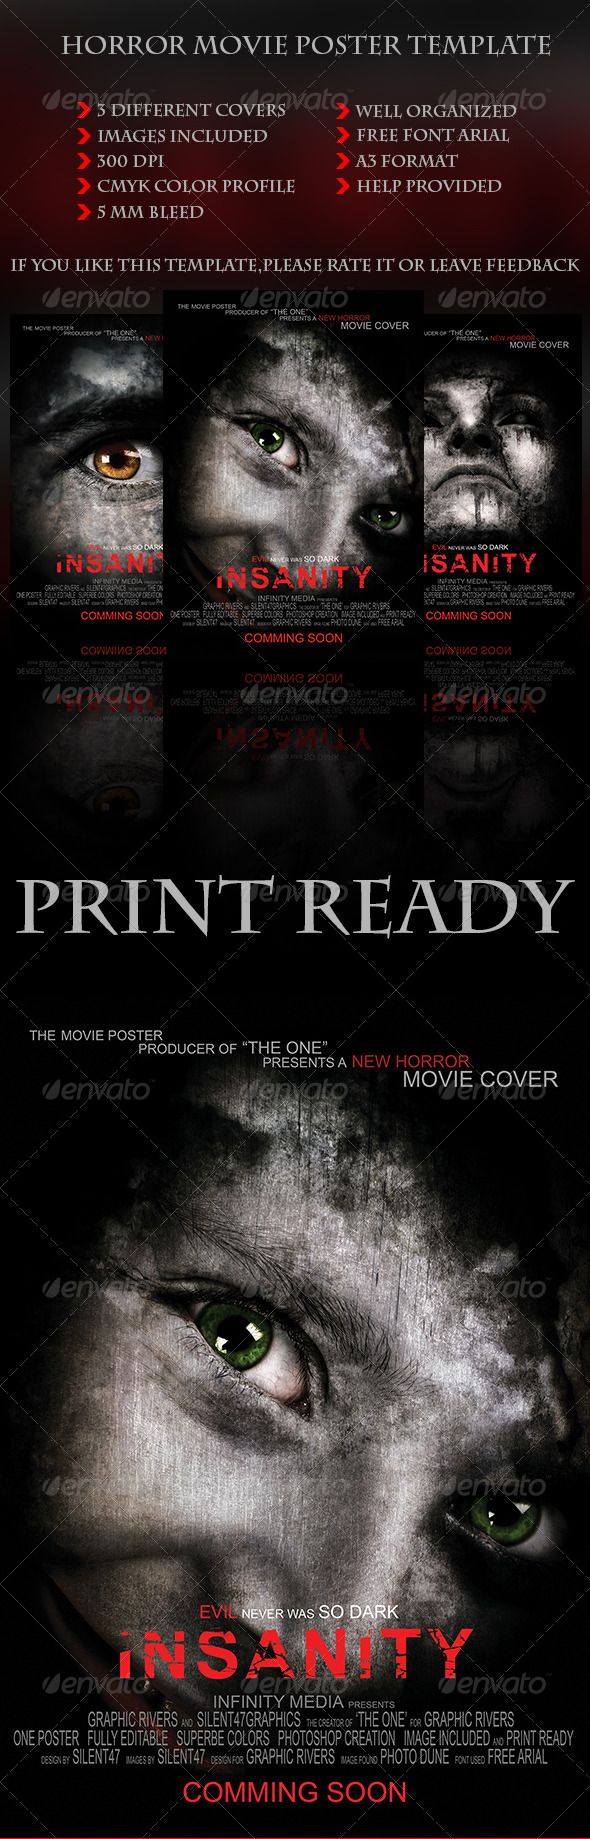 Horror Movie Poster Template — Photoshop PSD #death #cover • Available here → https://graphicriver.net/item/horror-movie-poster-template/5975361?ref=pxcr